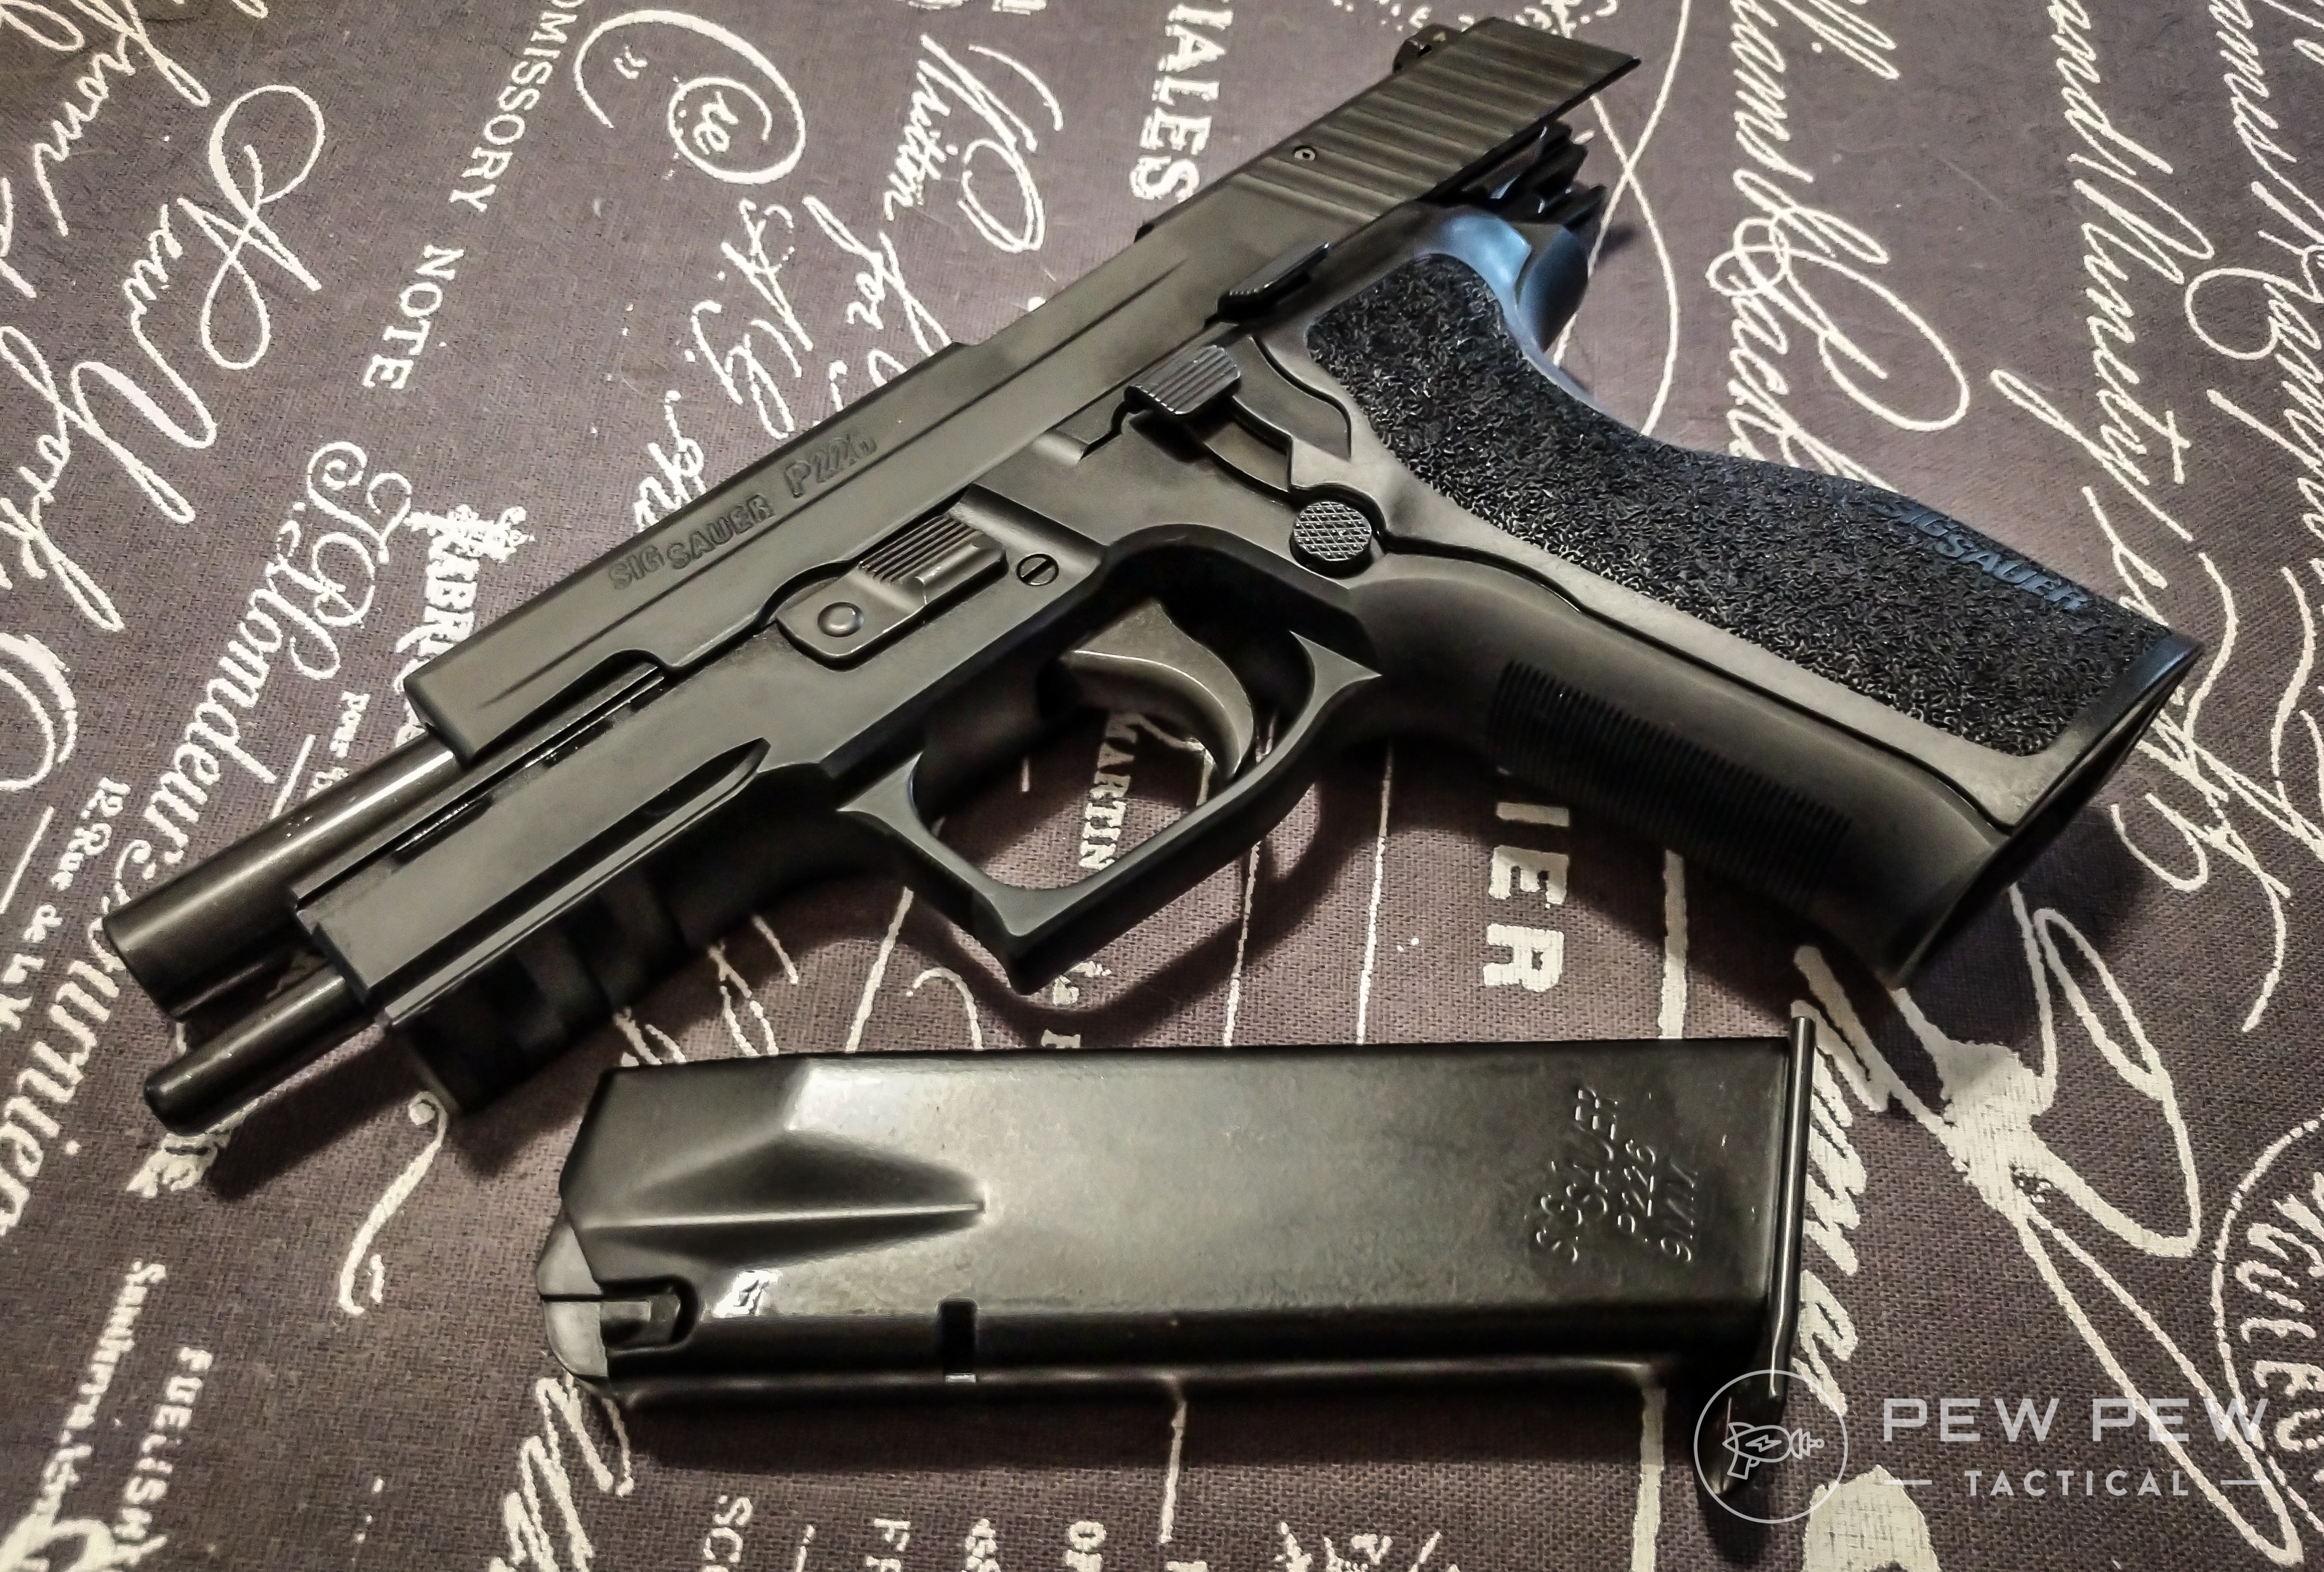 If you're looking for a hammer-fired pistol and/or a double-action/single-action, check out the SIG P226 Legion. It's an awesomely precise gun.